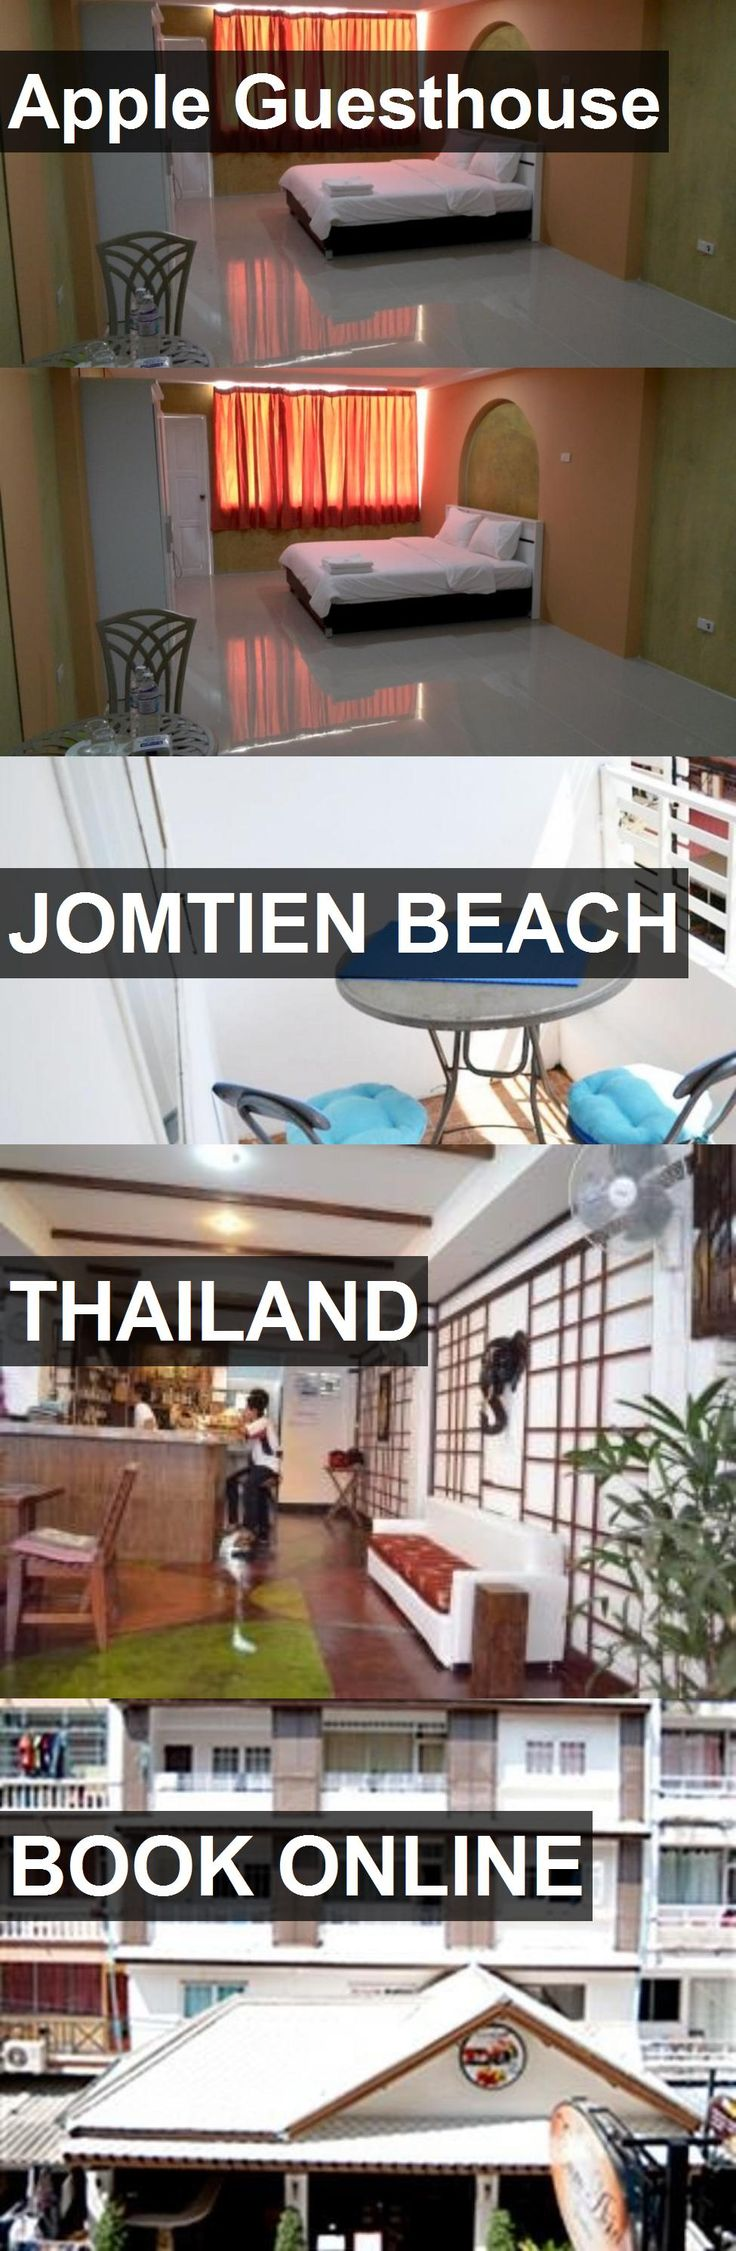 Hotel Apple Guesthouse in Jomtien Beach, Thailand. For more information, photos, reviews and best prices please follow the link. #Thailand #JomtienBeach #travel #vacation #hotel